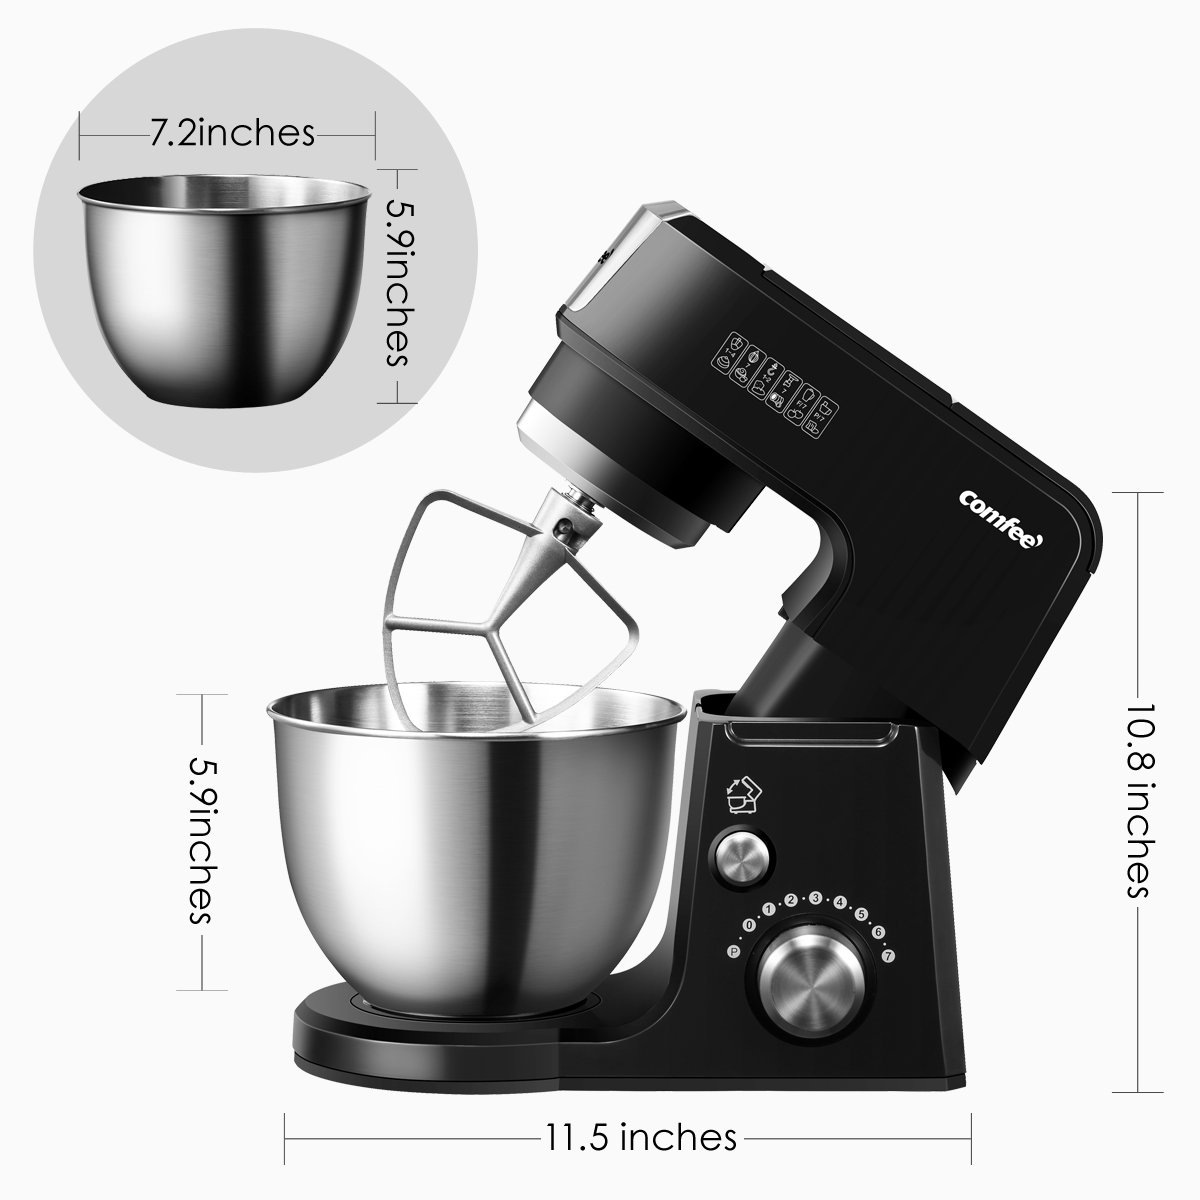 Comfee 2.6Qt Die Cast 7-in-1 Multi Function Tilt-Head Stand Mixer with SUS Mixing Bowl, Whisk, Hook, Beater, Splash Guard.4 Outlets, 7 Speeds & Pulse, 15 Minutes Timer Planetary Mixer (Black) by Comfee (Image #7)